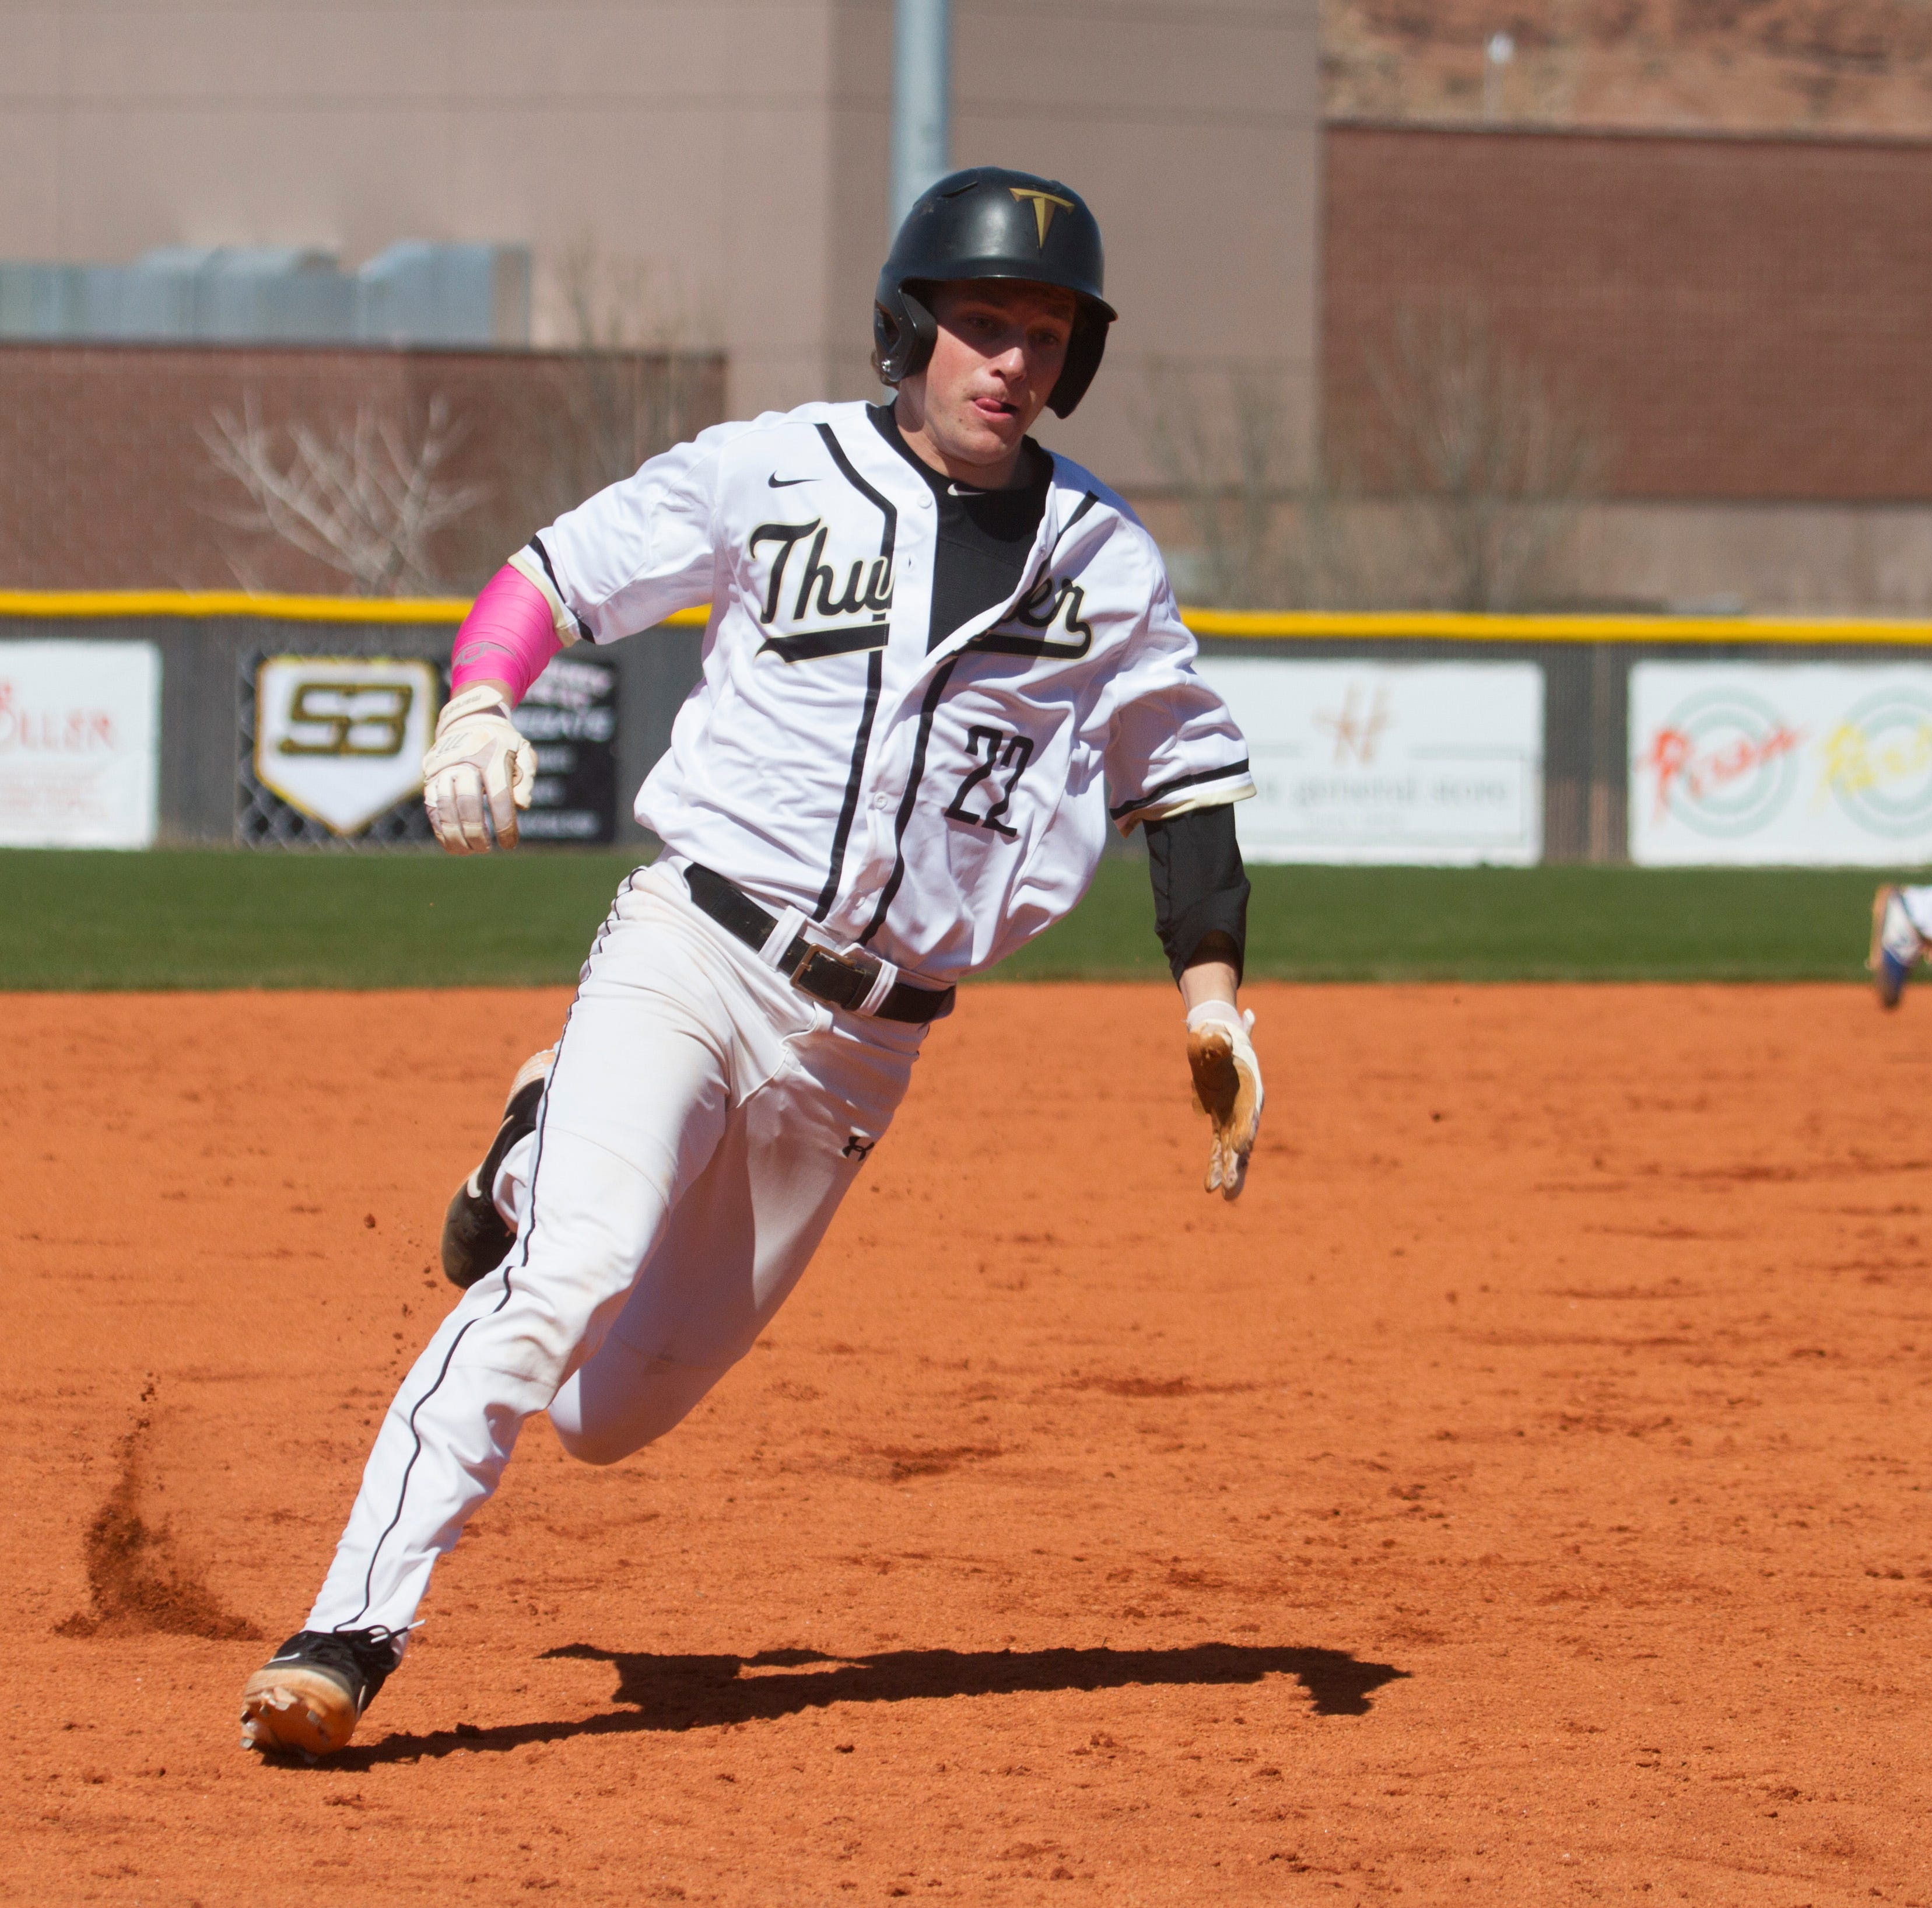 Region 9 baseball: Desert Hills is on a roll as it charges into region play